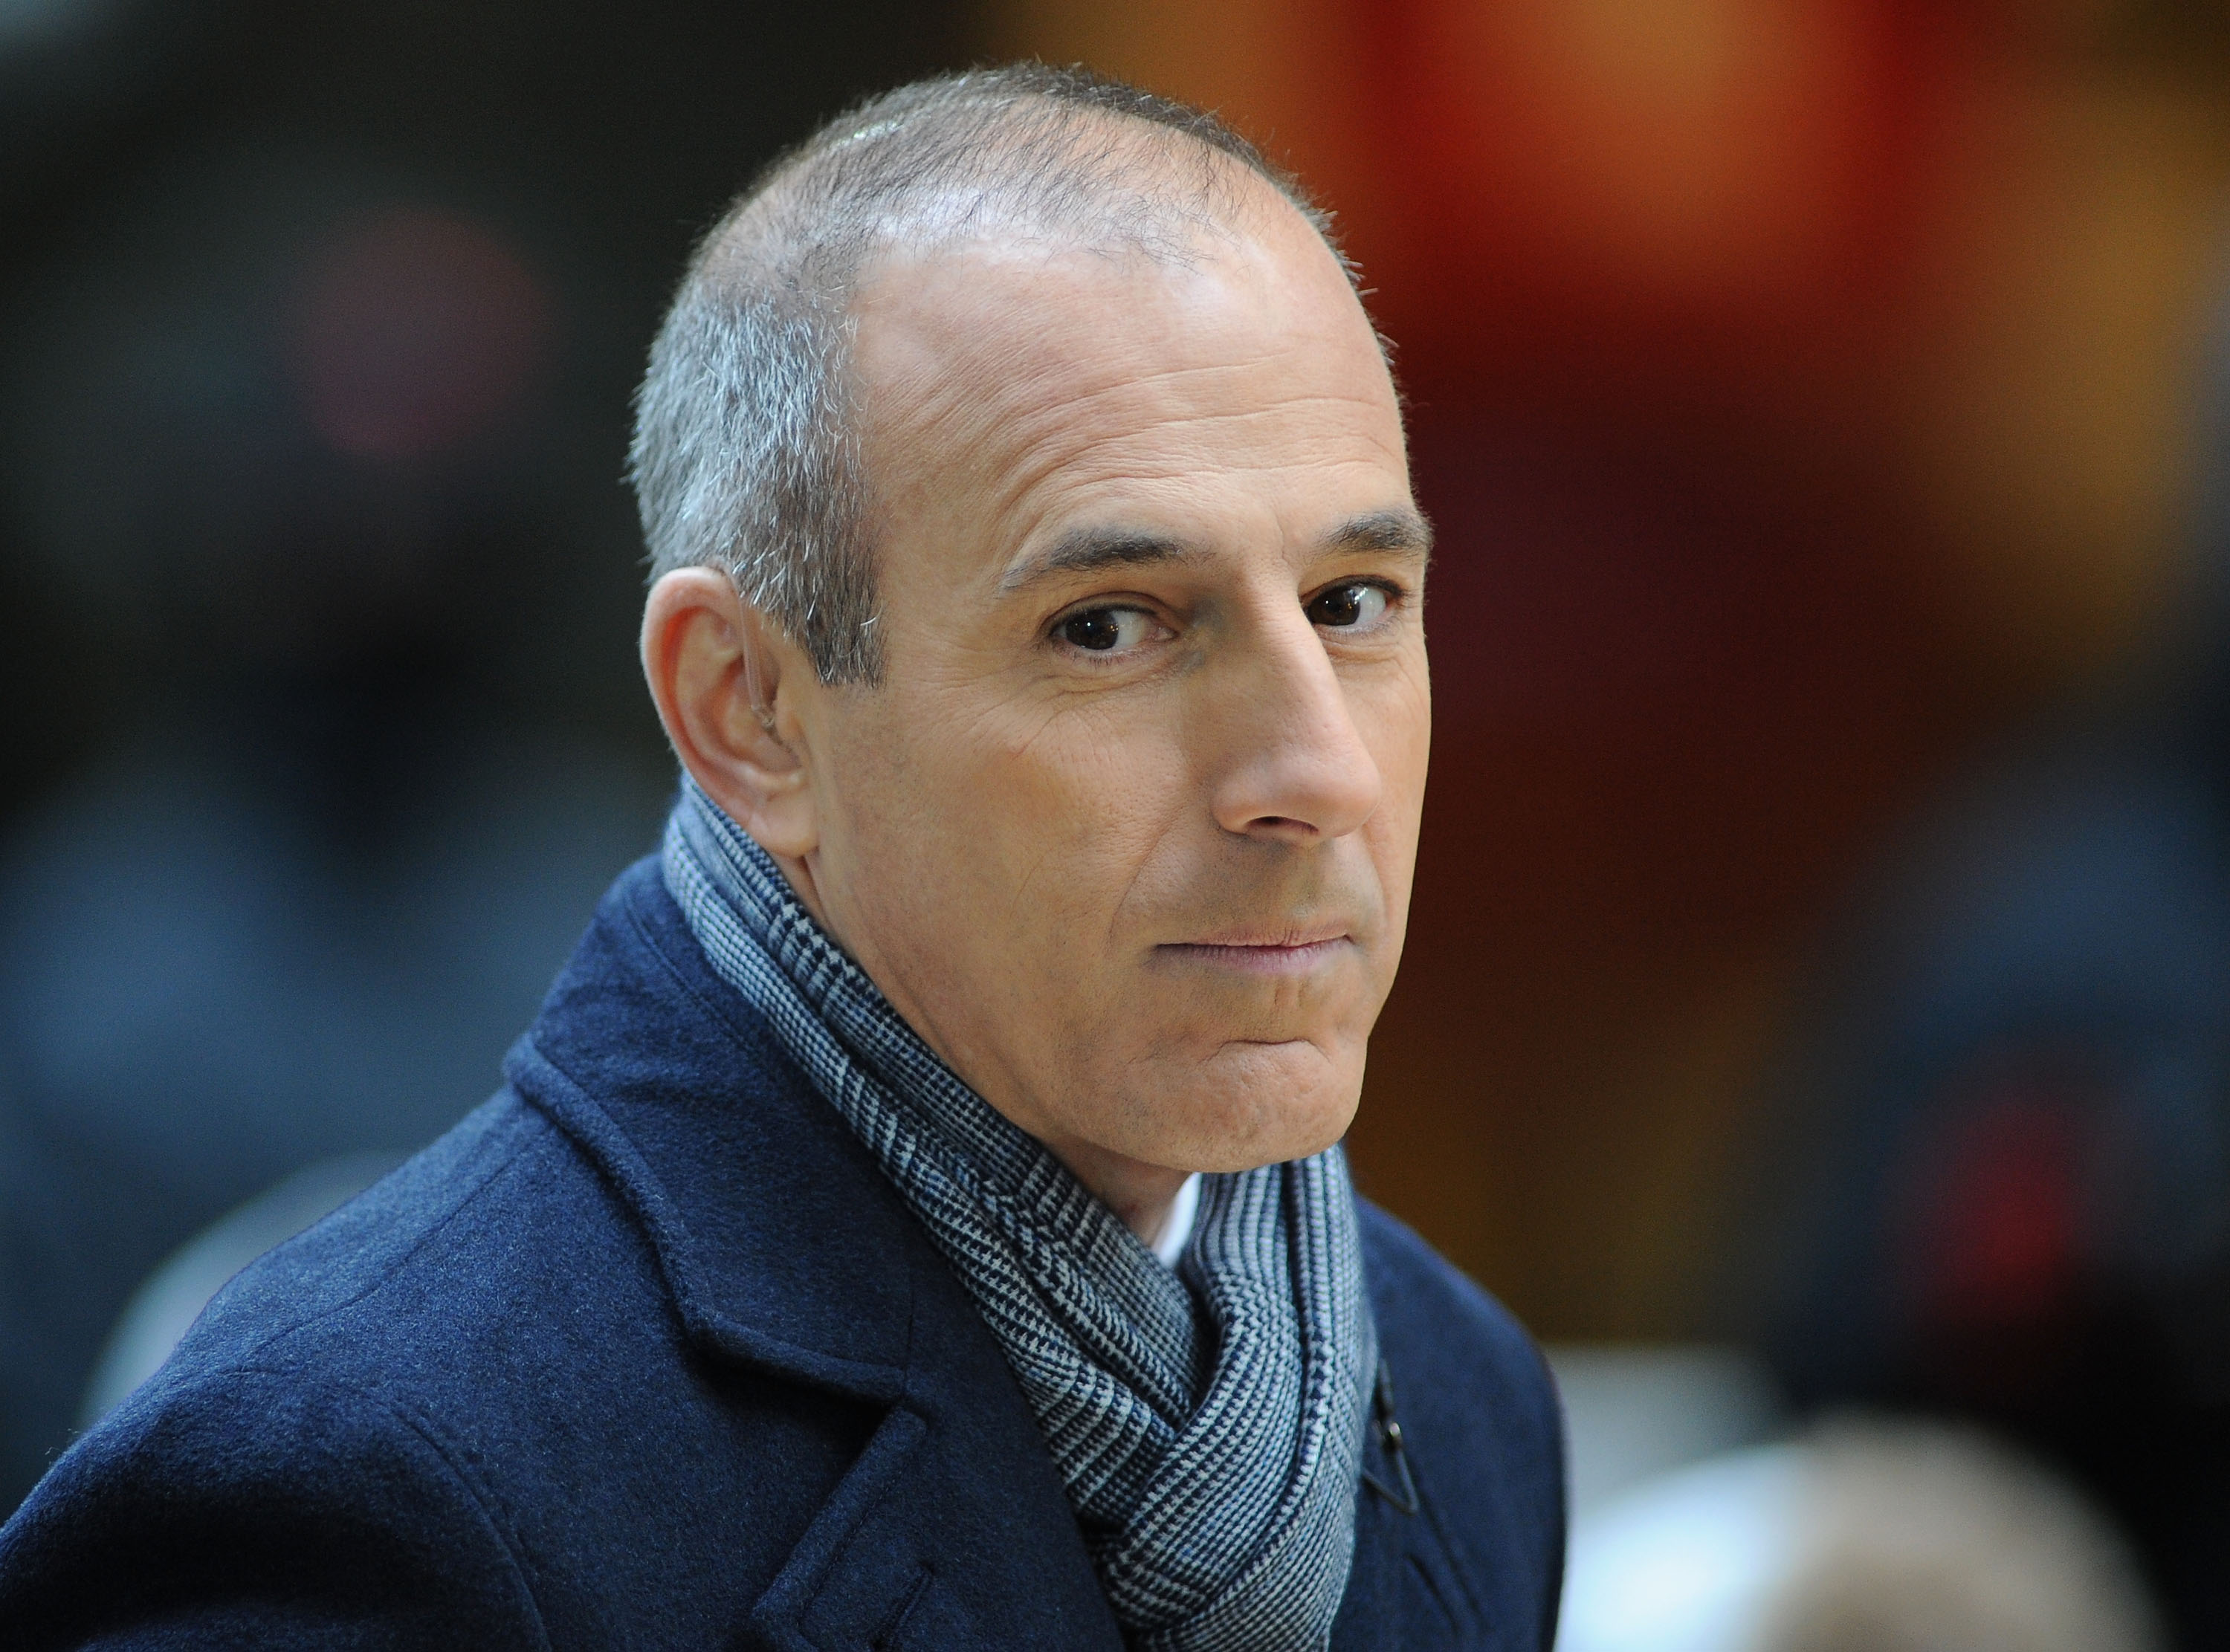 matt lauer in file